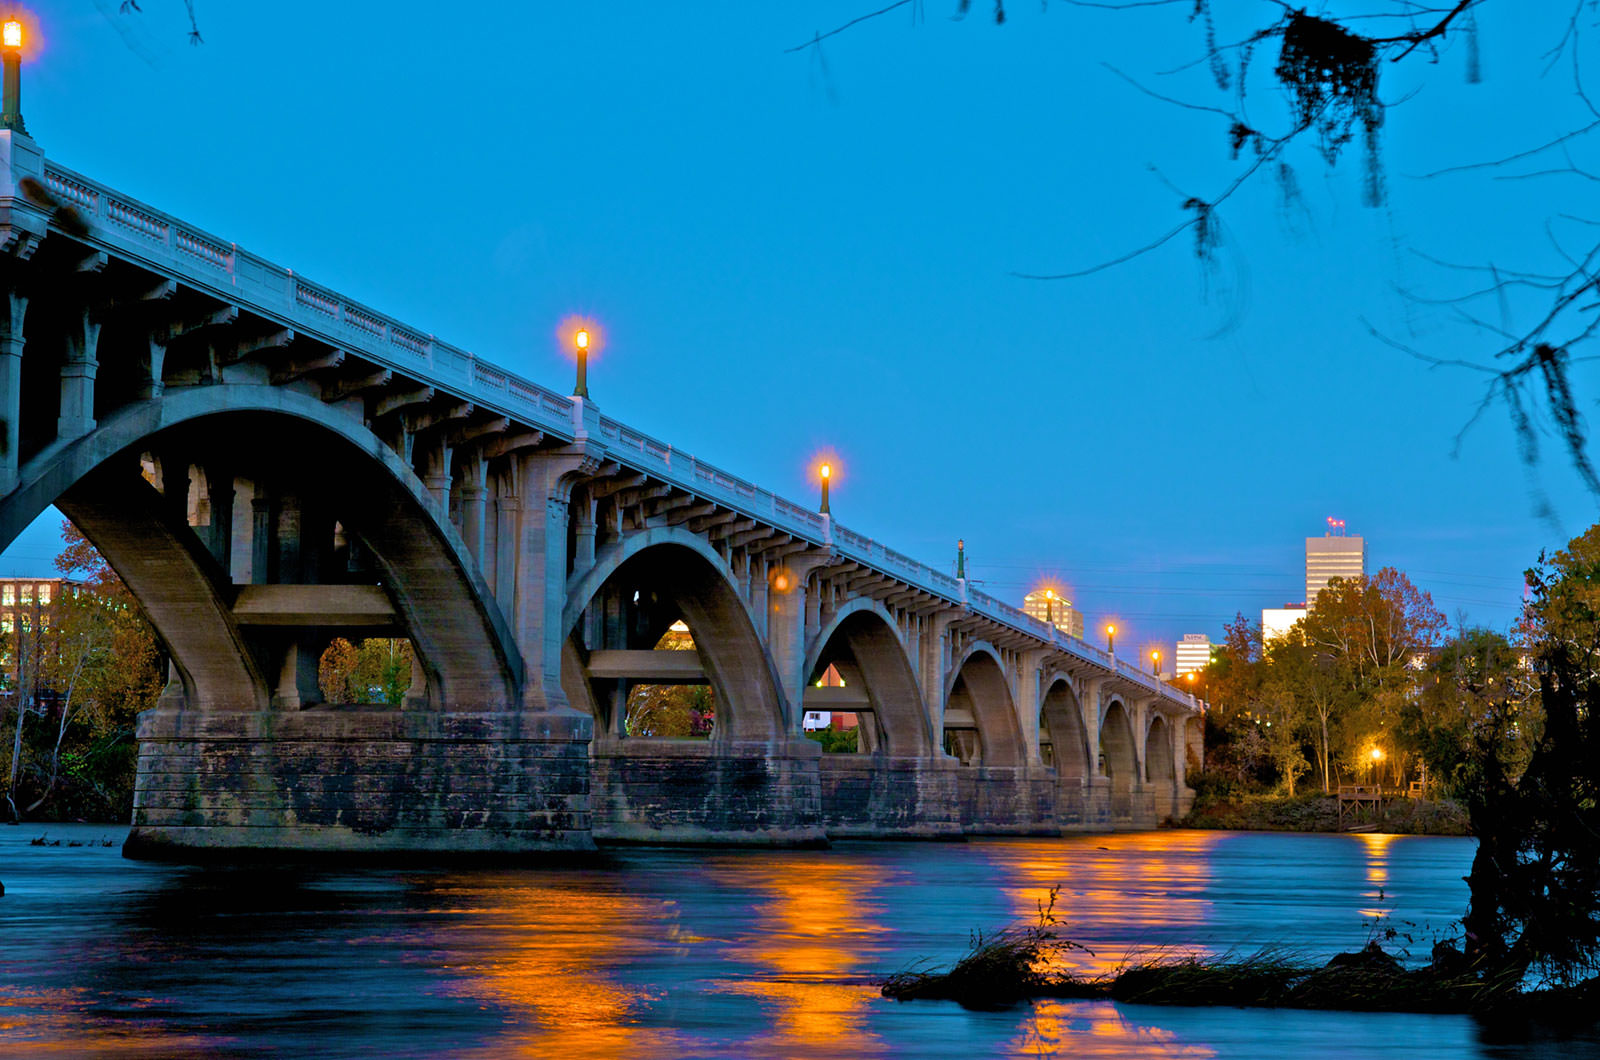 Dusk on the Gervais St Bridge in Economically Diverse Richland County, SC